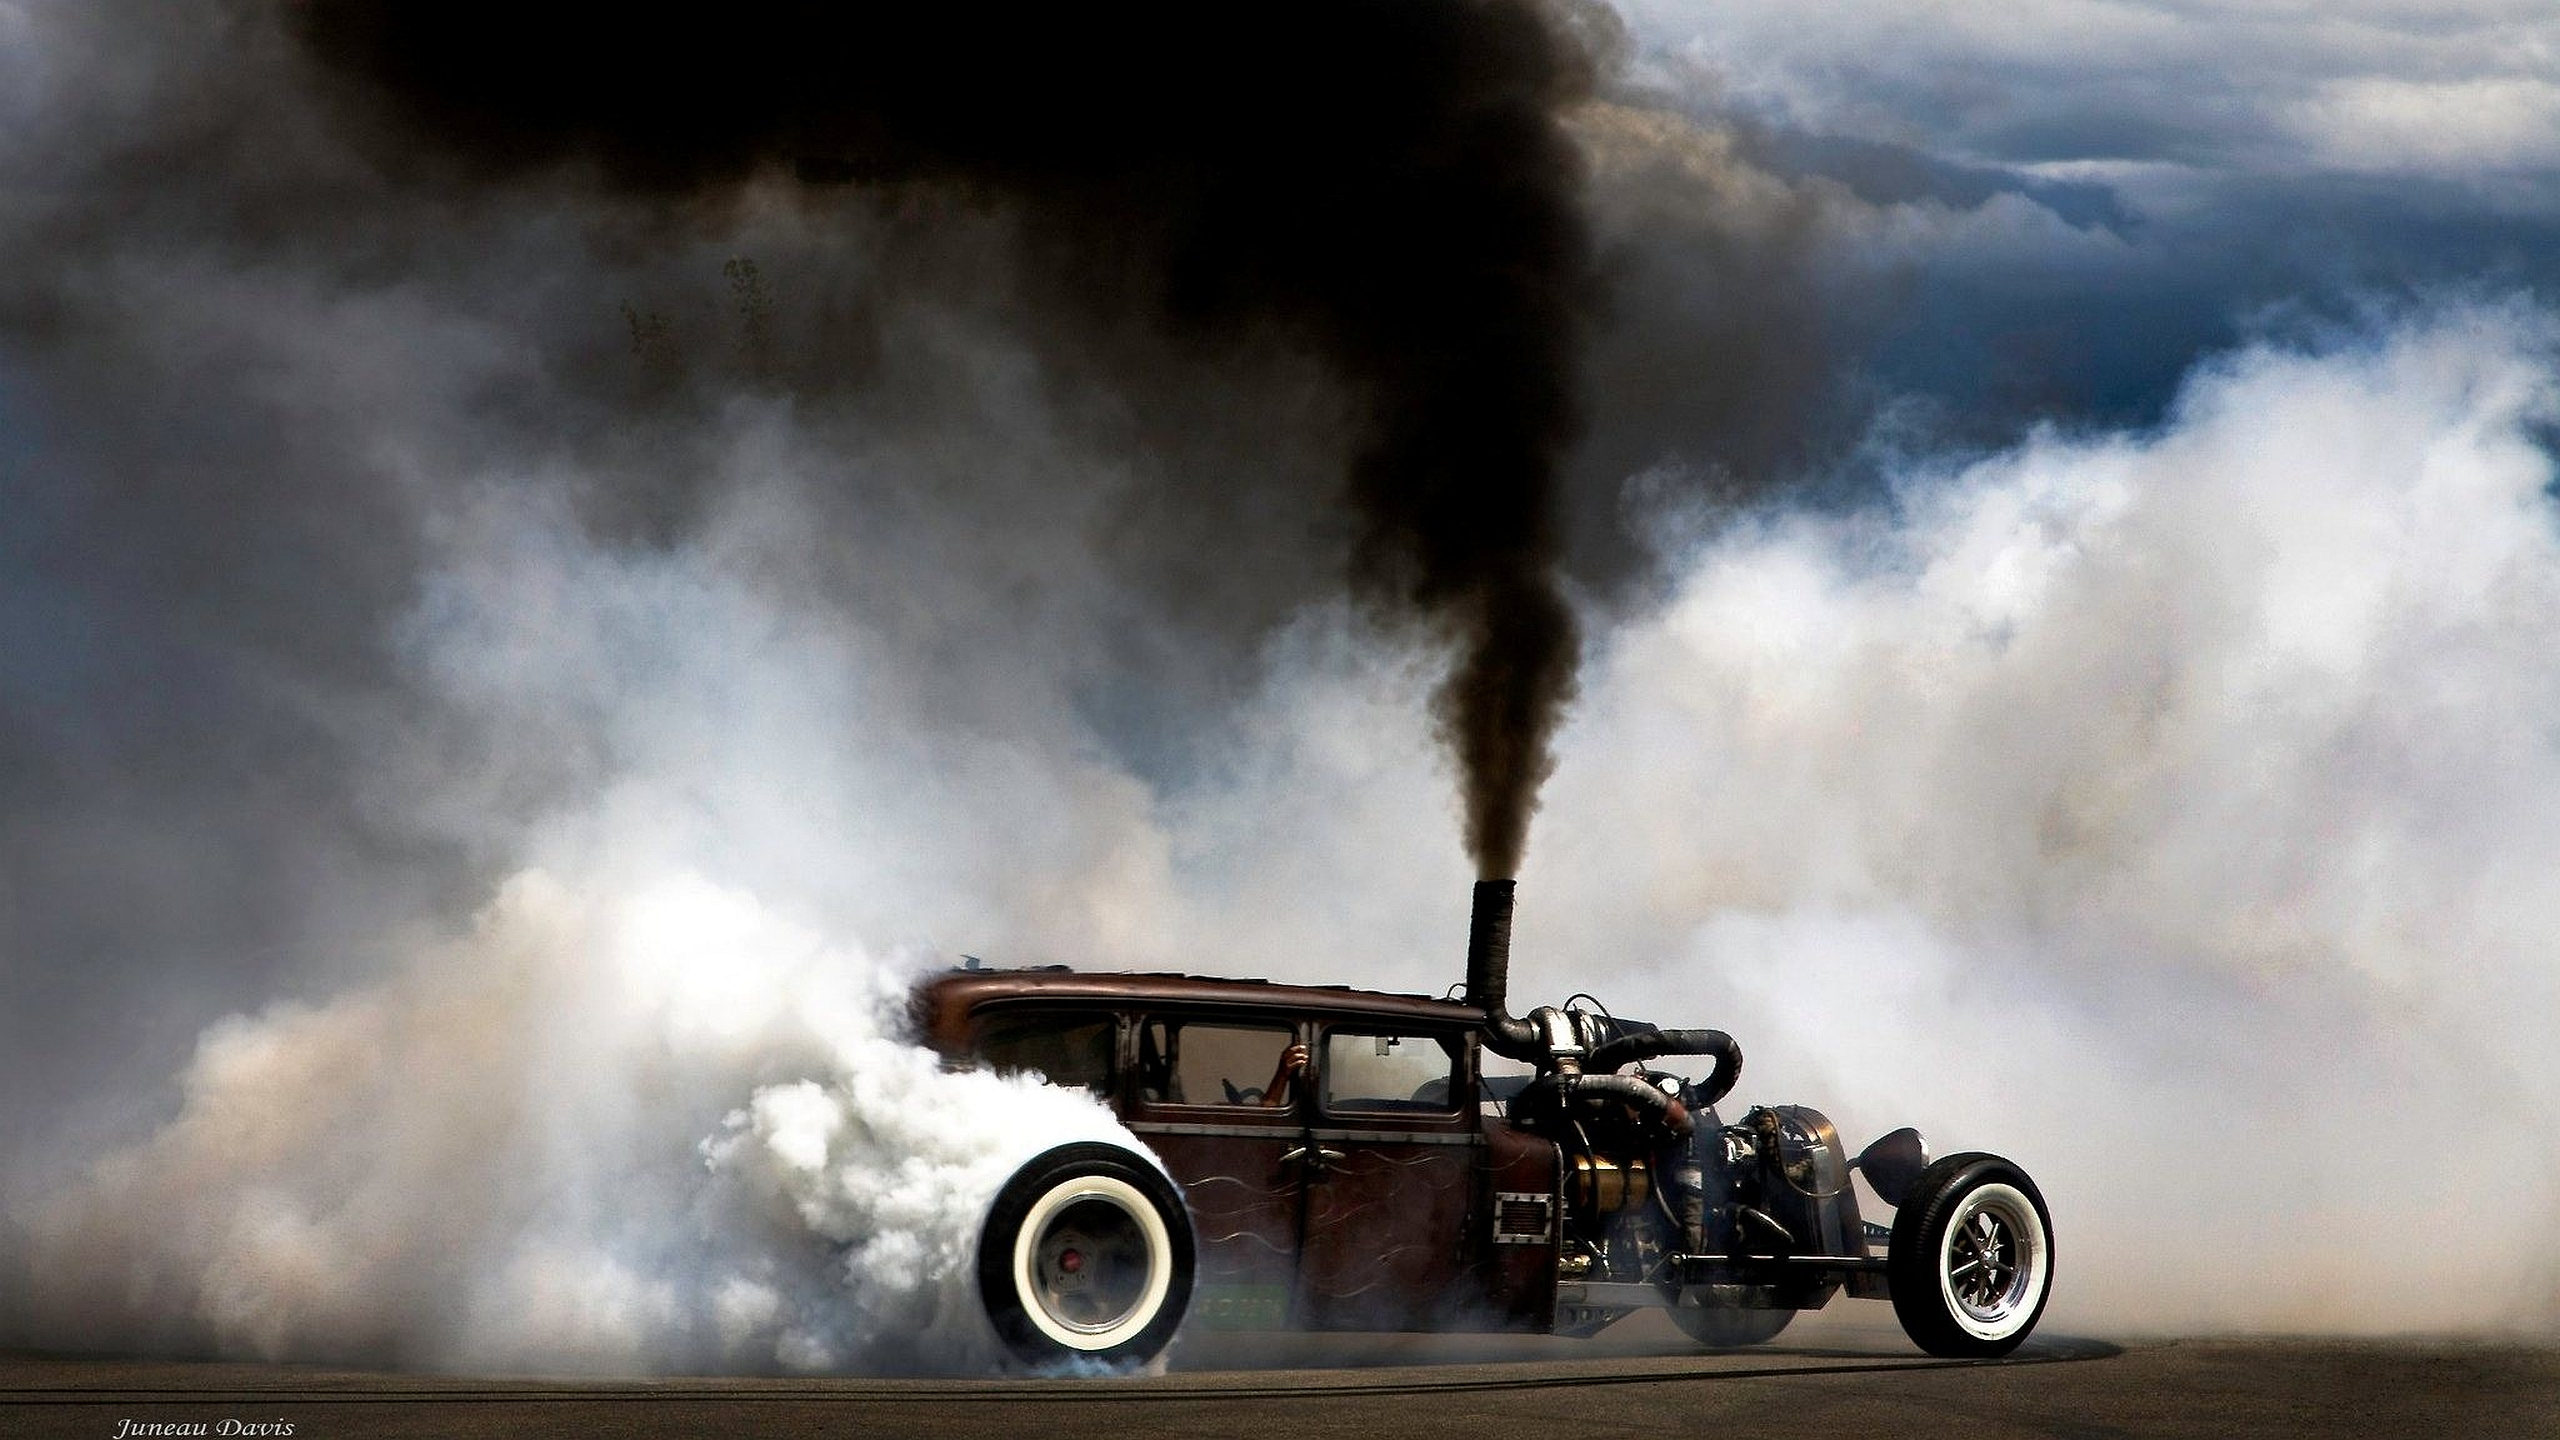 Diesel Rat Rod Full HD Wallpaper And Background Image